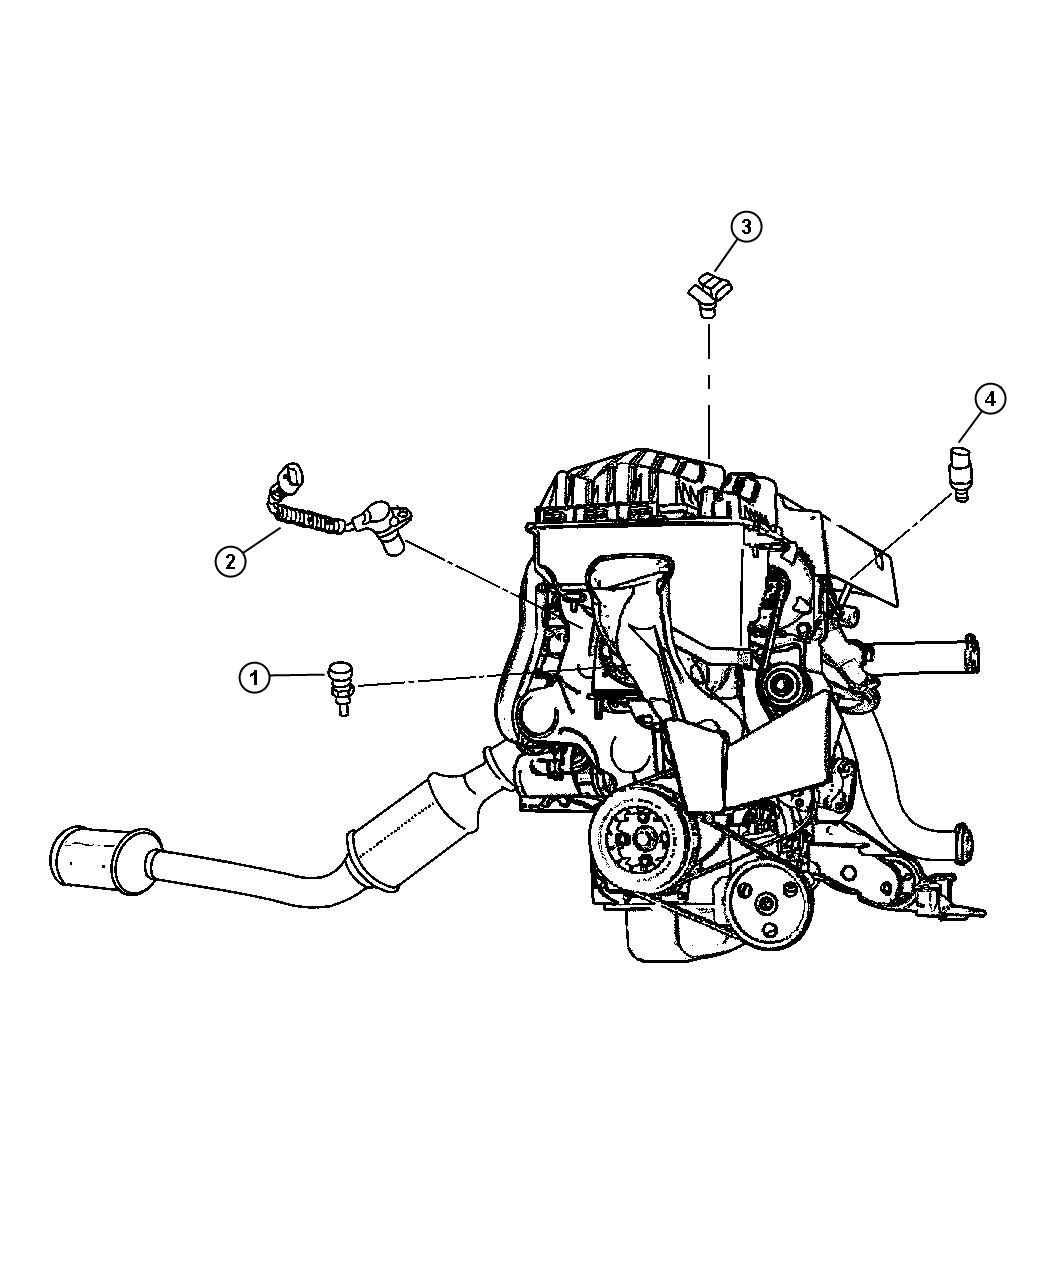 Diagram 1993 Buick Century 3 1 Engine Diagram Full Version Hd Quality Engine Diagram Tilldiagram Radd Fr